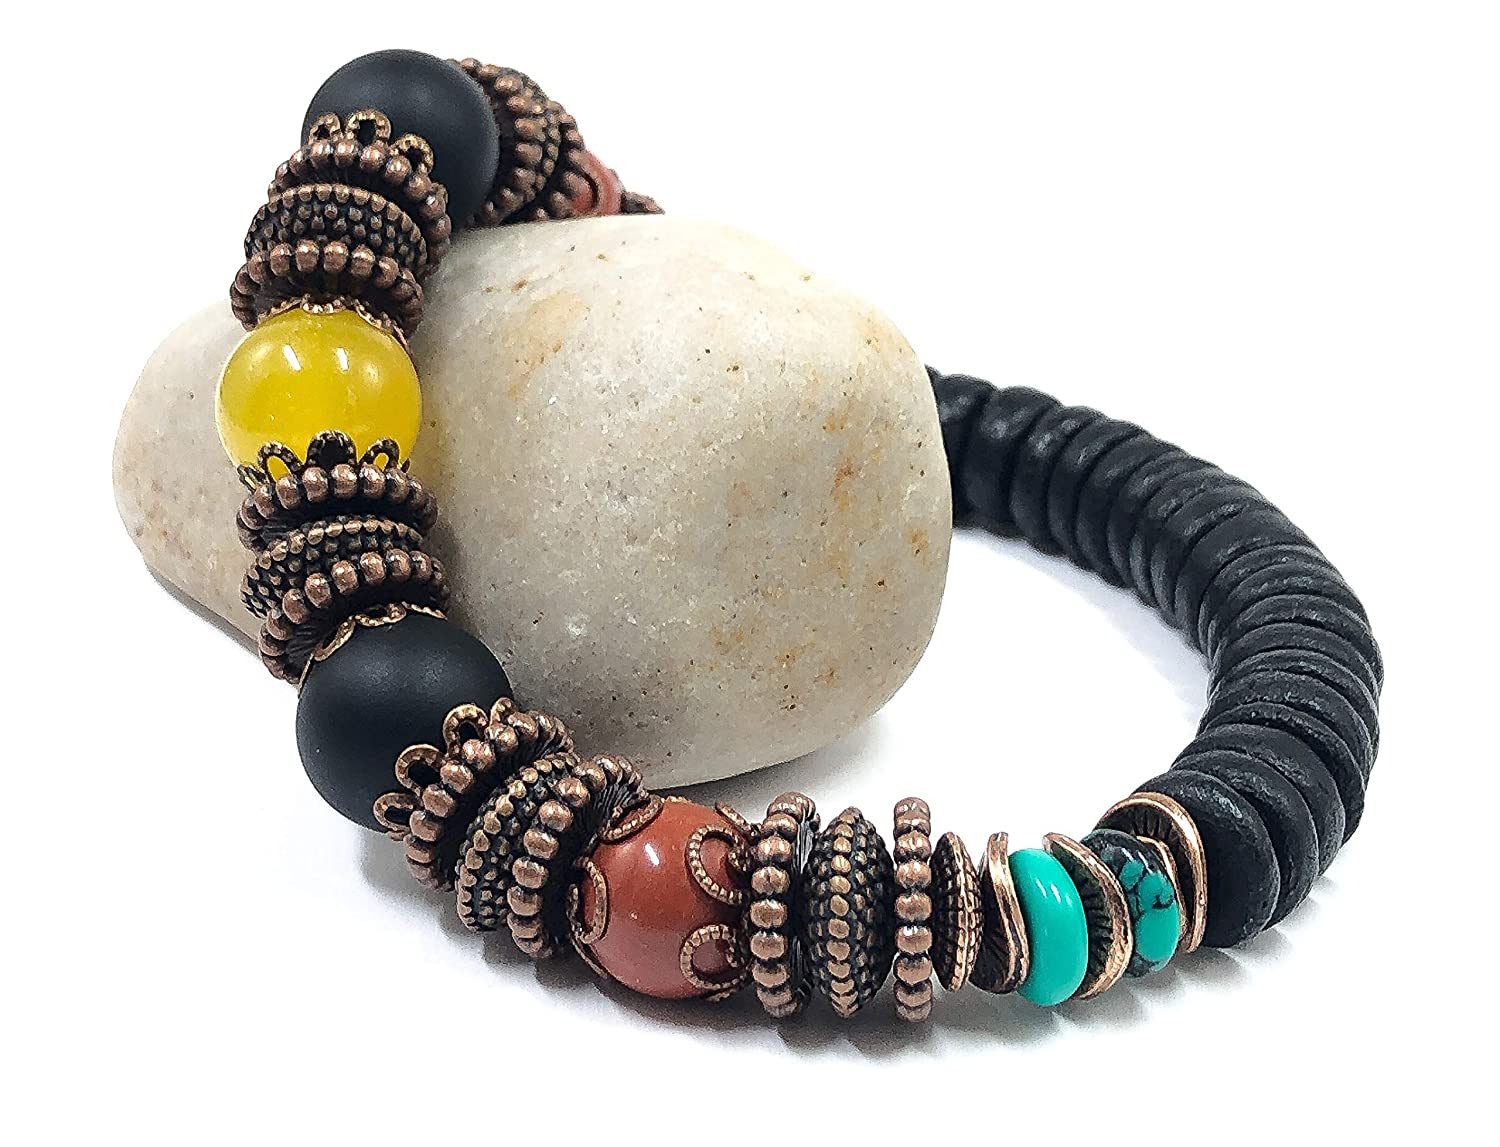 Jamaican Rasta Jewelry 8 inches to 8.5 inches Stretch Bracelet for Women Men